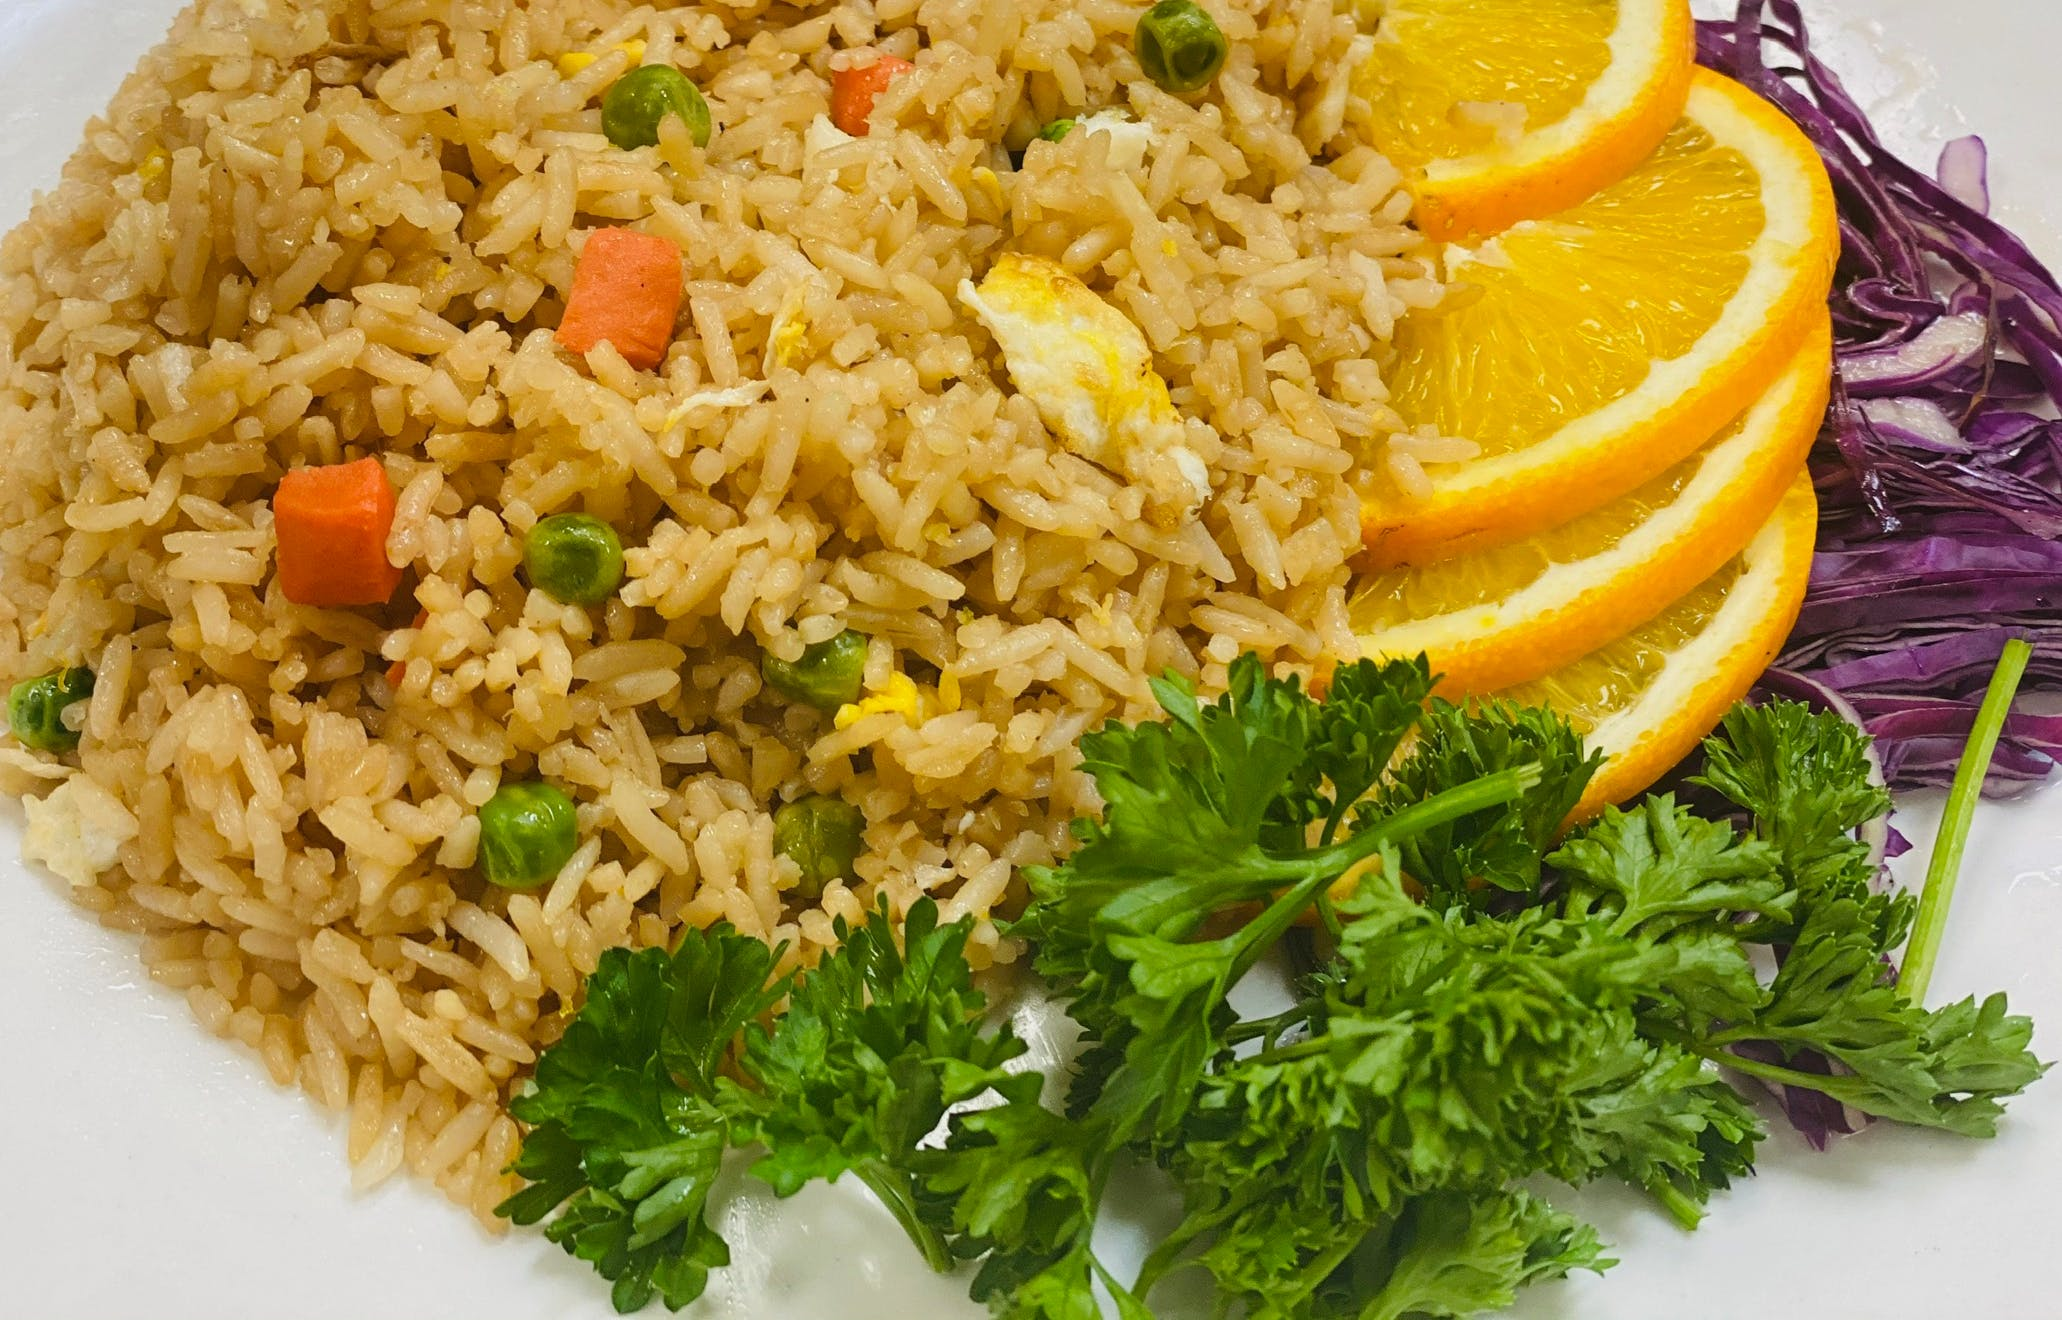 Vegetable Fried Rice from Stir Fry 88 in Green Bay, WI